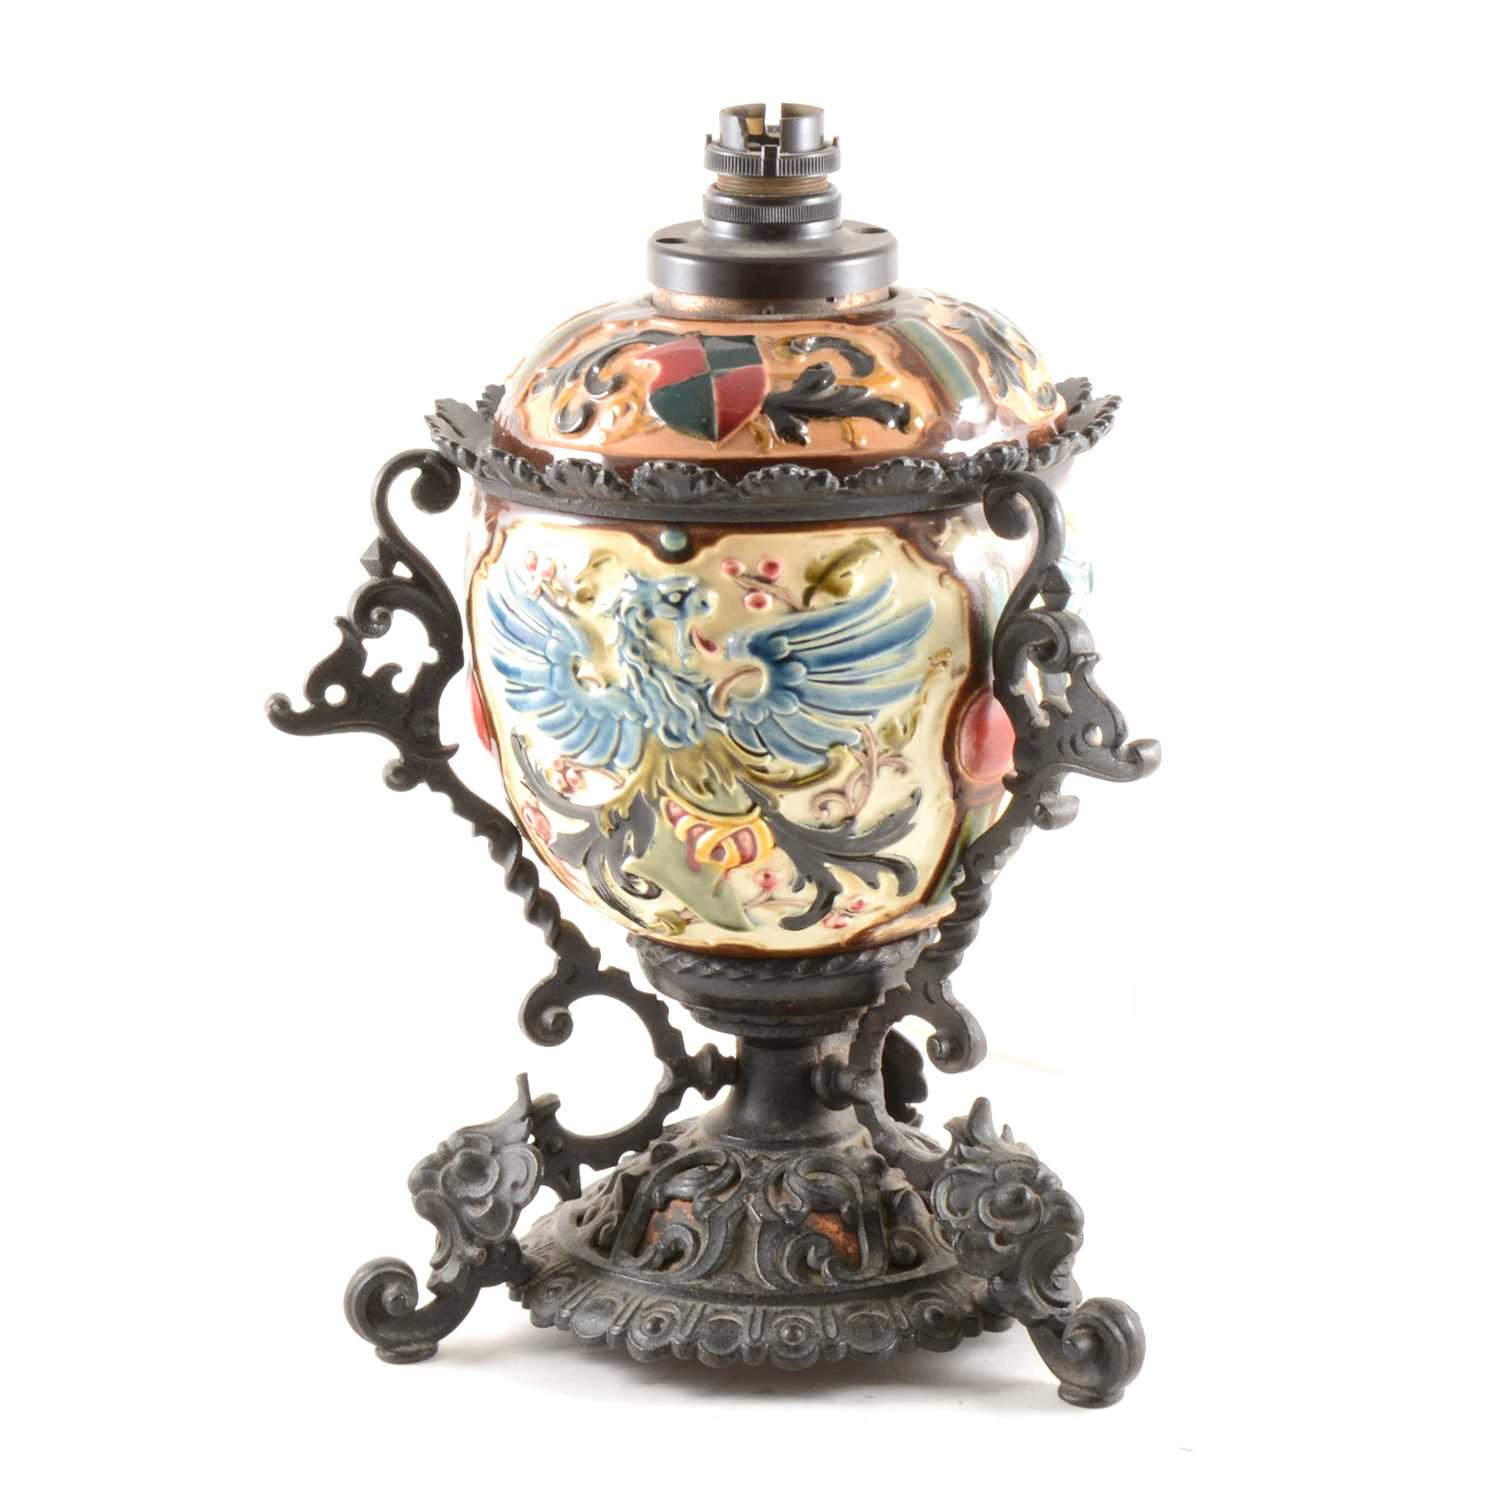 Lot 37-A majolica style centrepiece converted to a table lamp